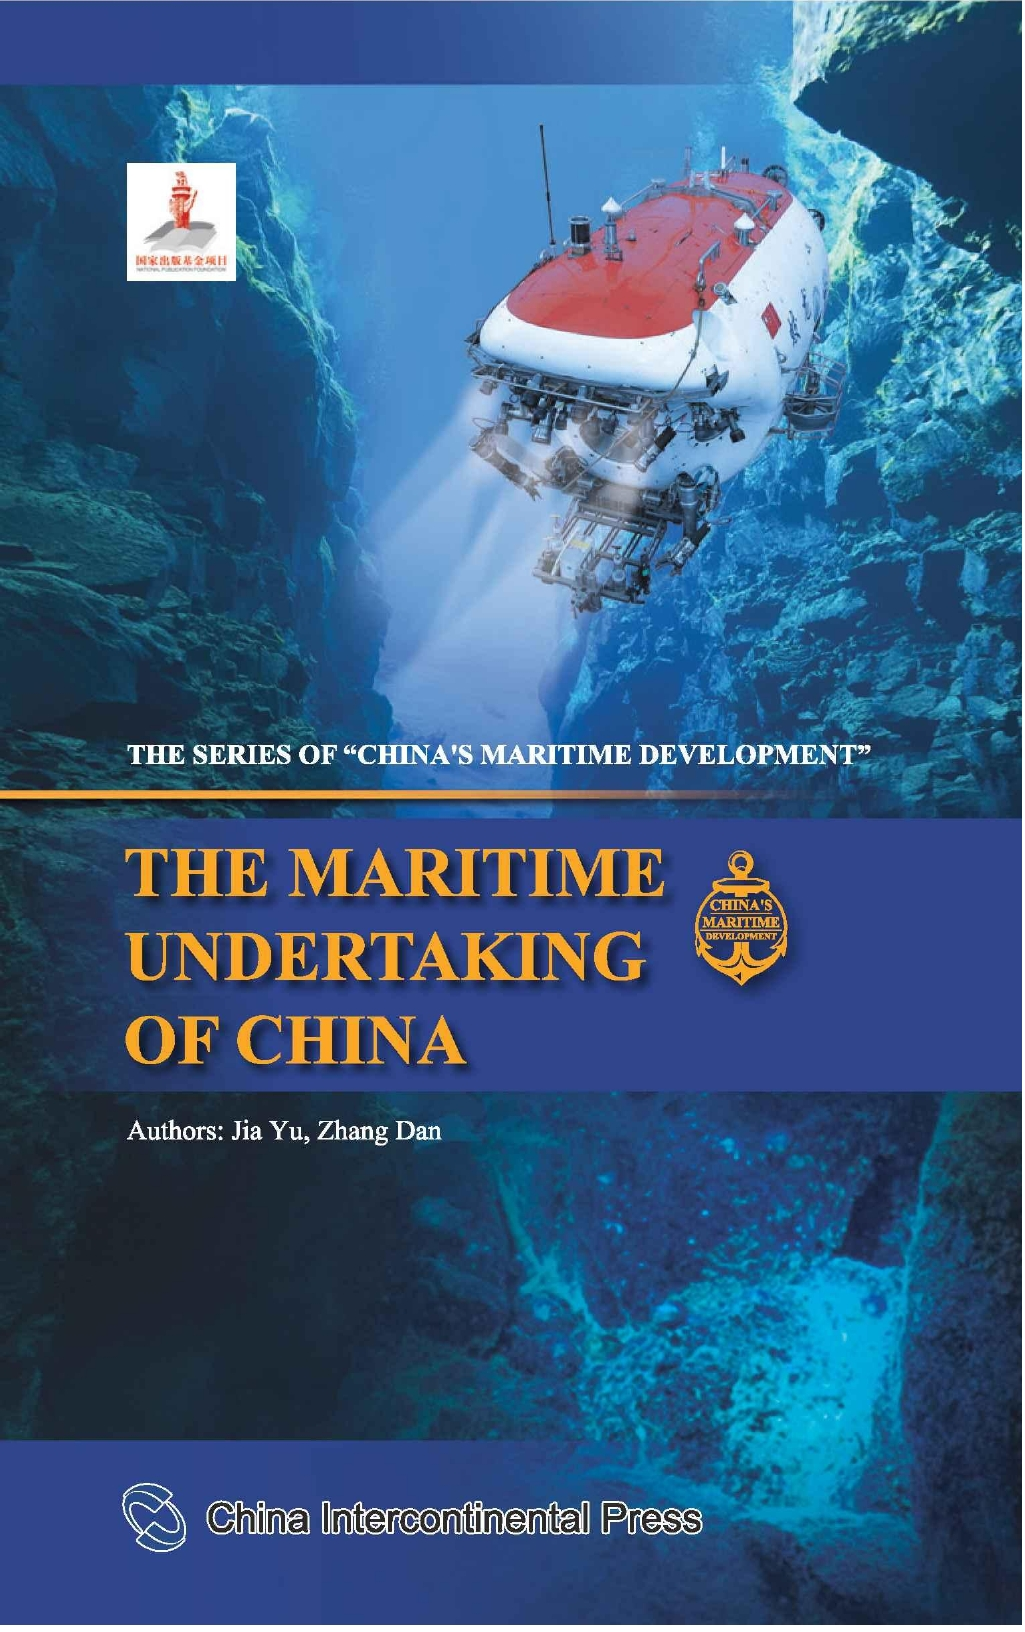 The Maritime undertaking of China